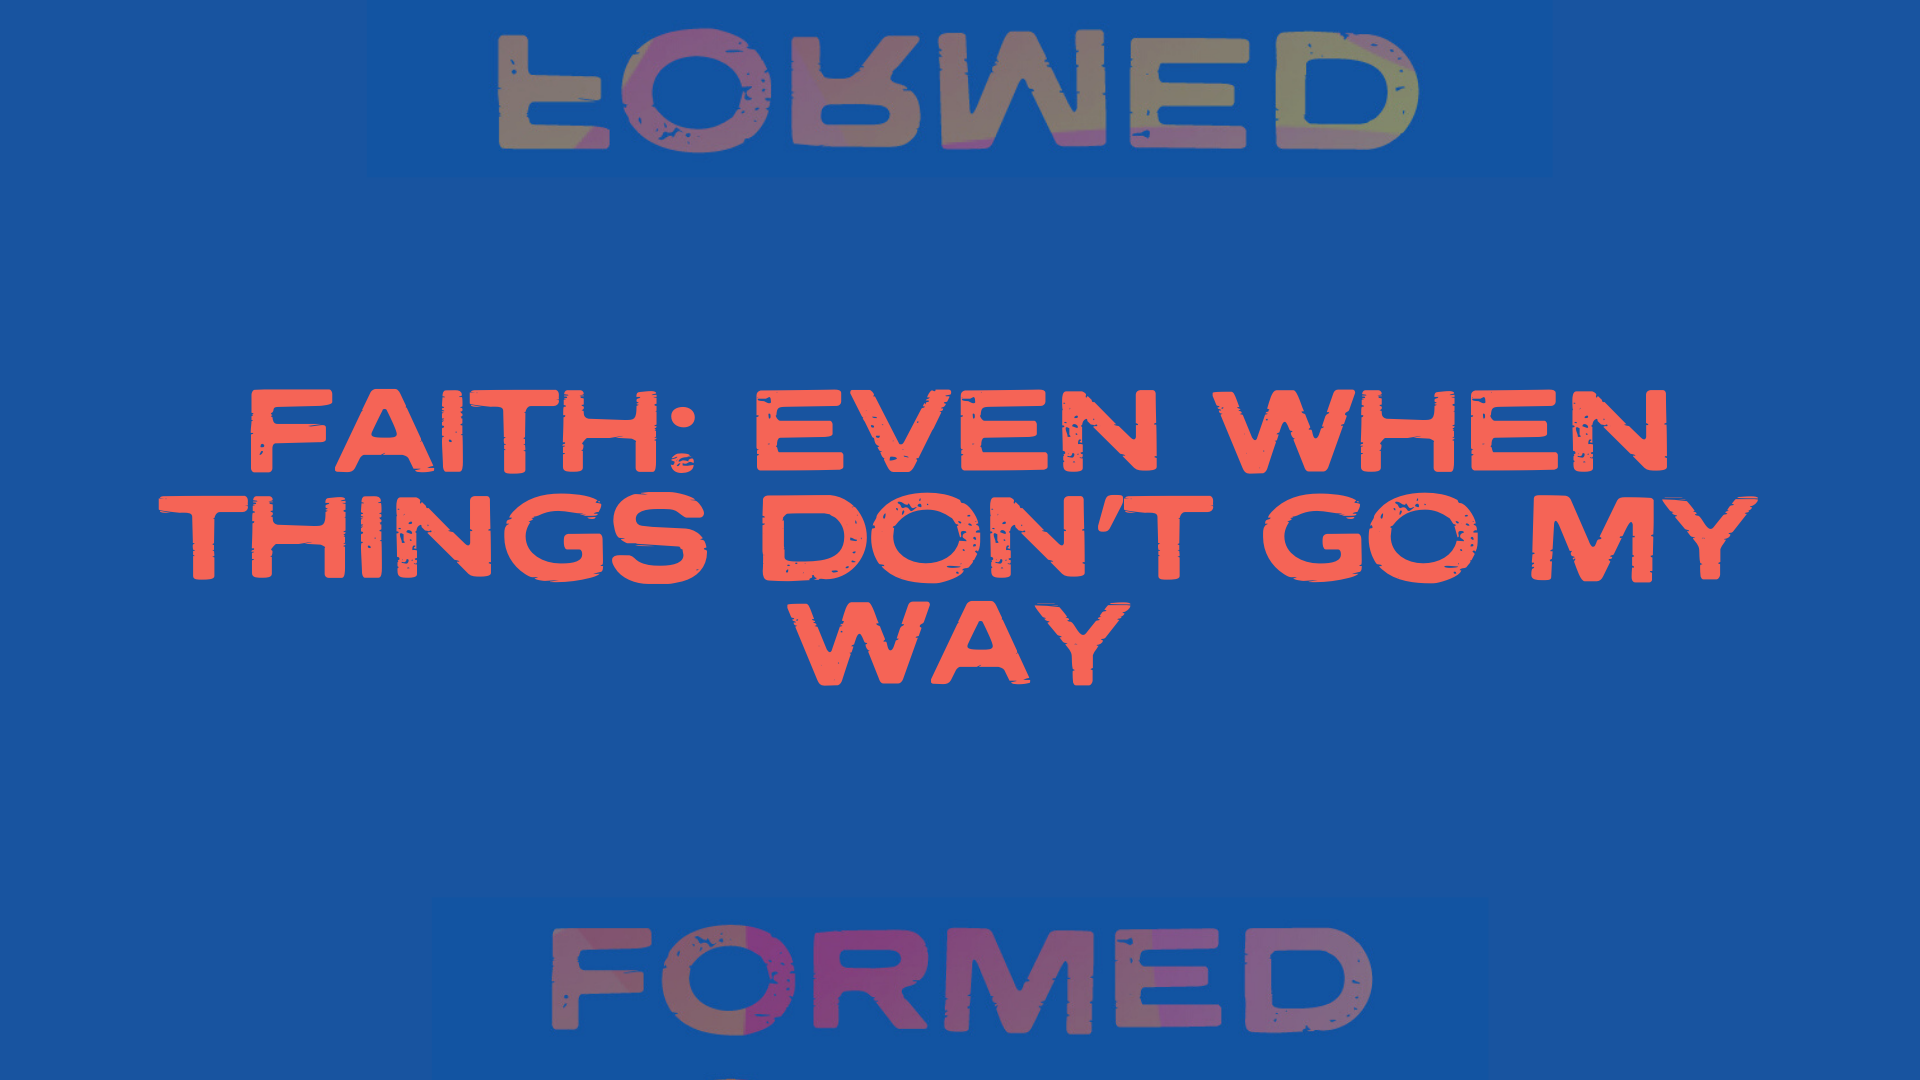 Faith: Even When Things Don't Go My Way